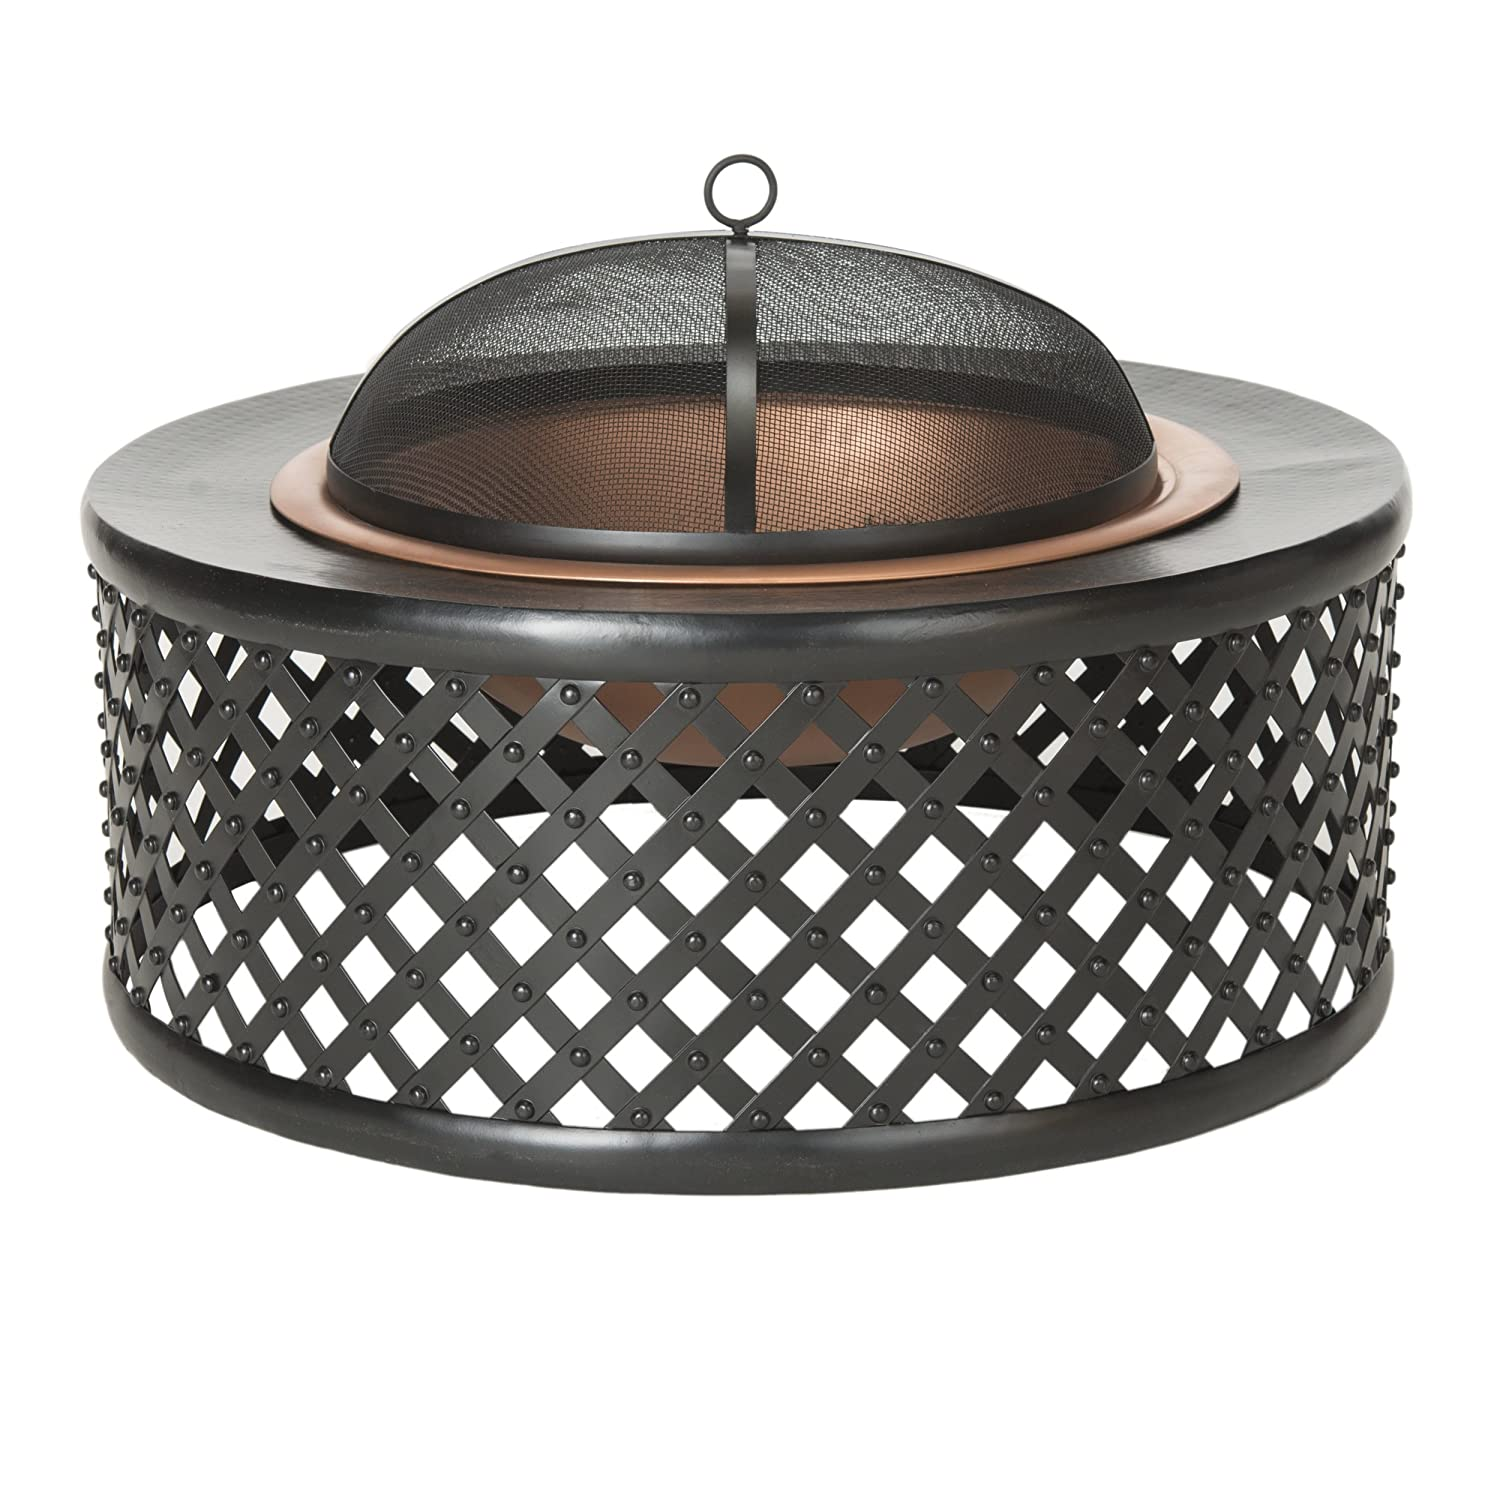 Safavieh Outdoor Collection Jamaica, Copper and Black Fire Pit,